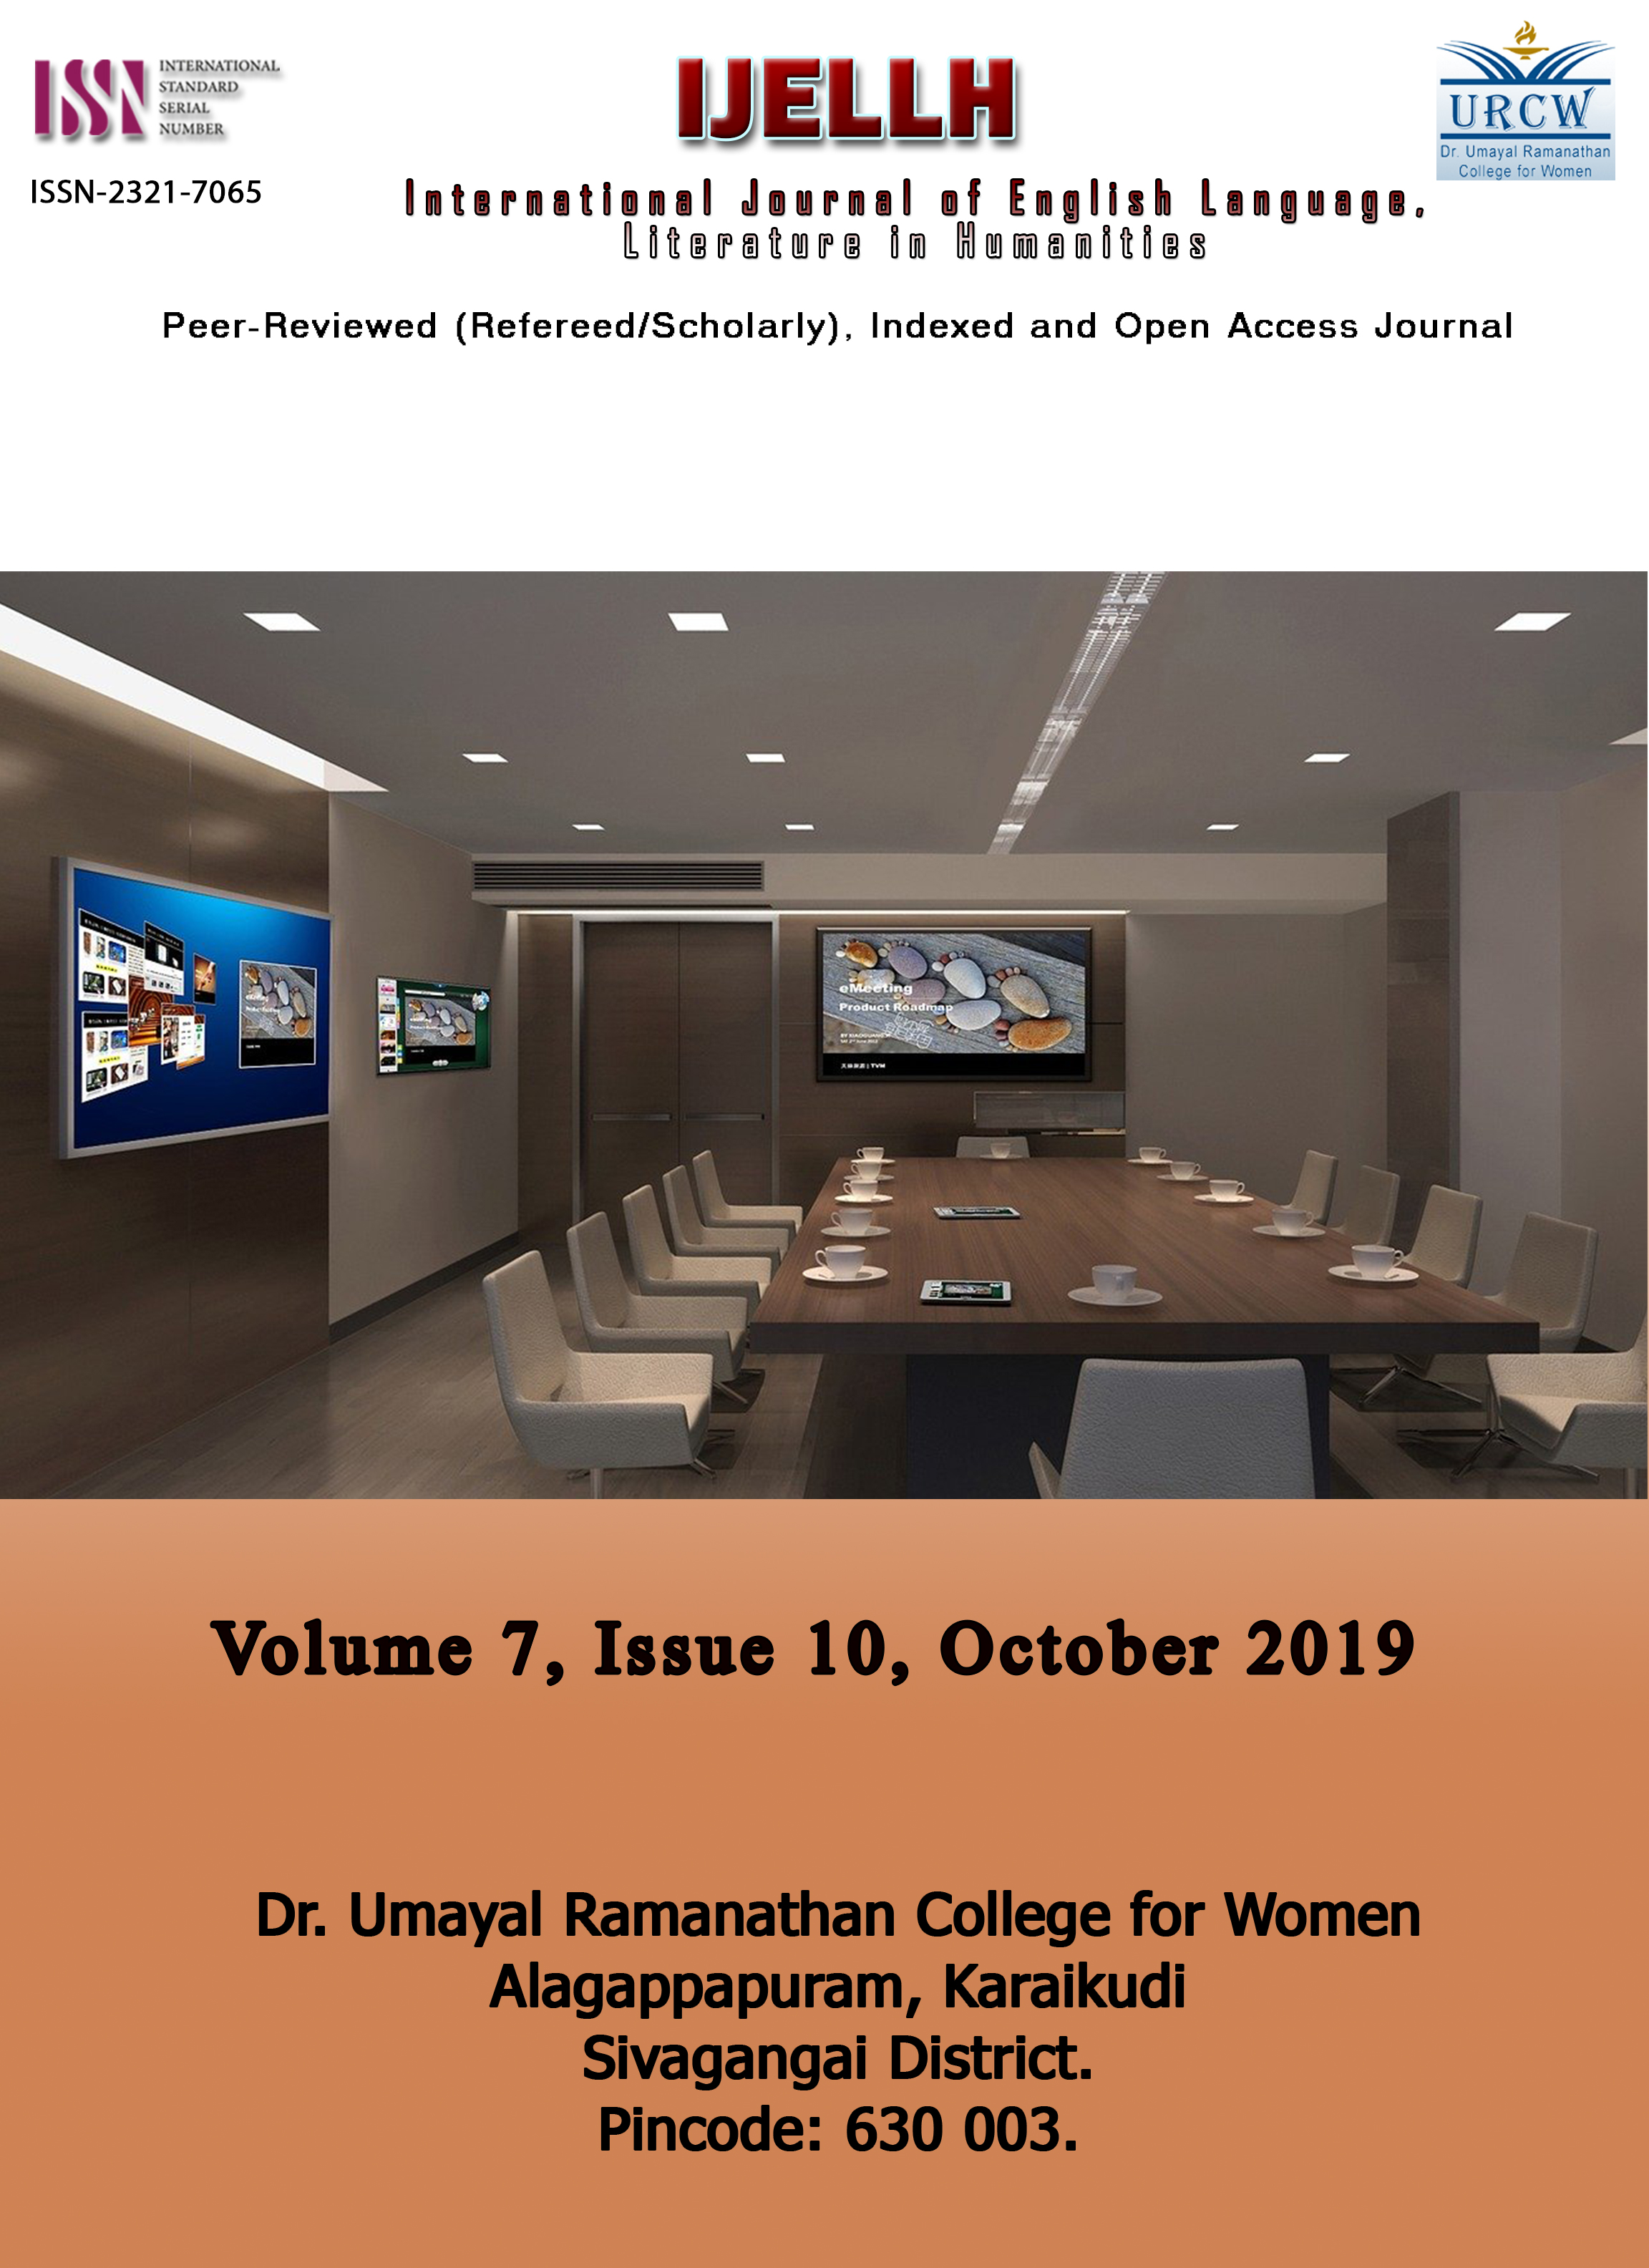 View Vol. 7 No. 10 (2019): Conference Paper Publication : Volume 7, Issue 10, October 2019